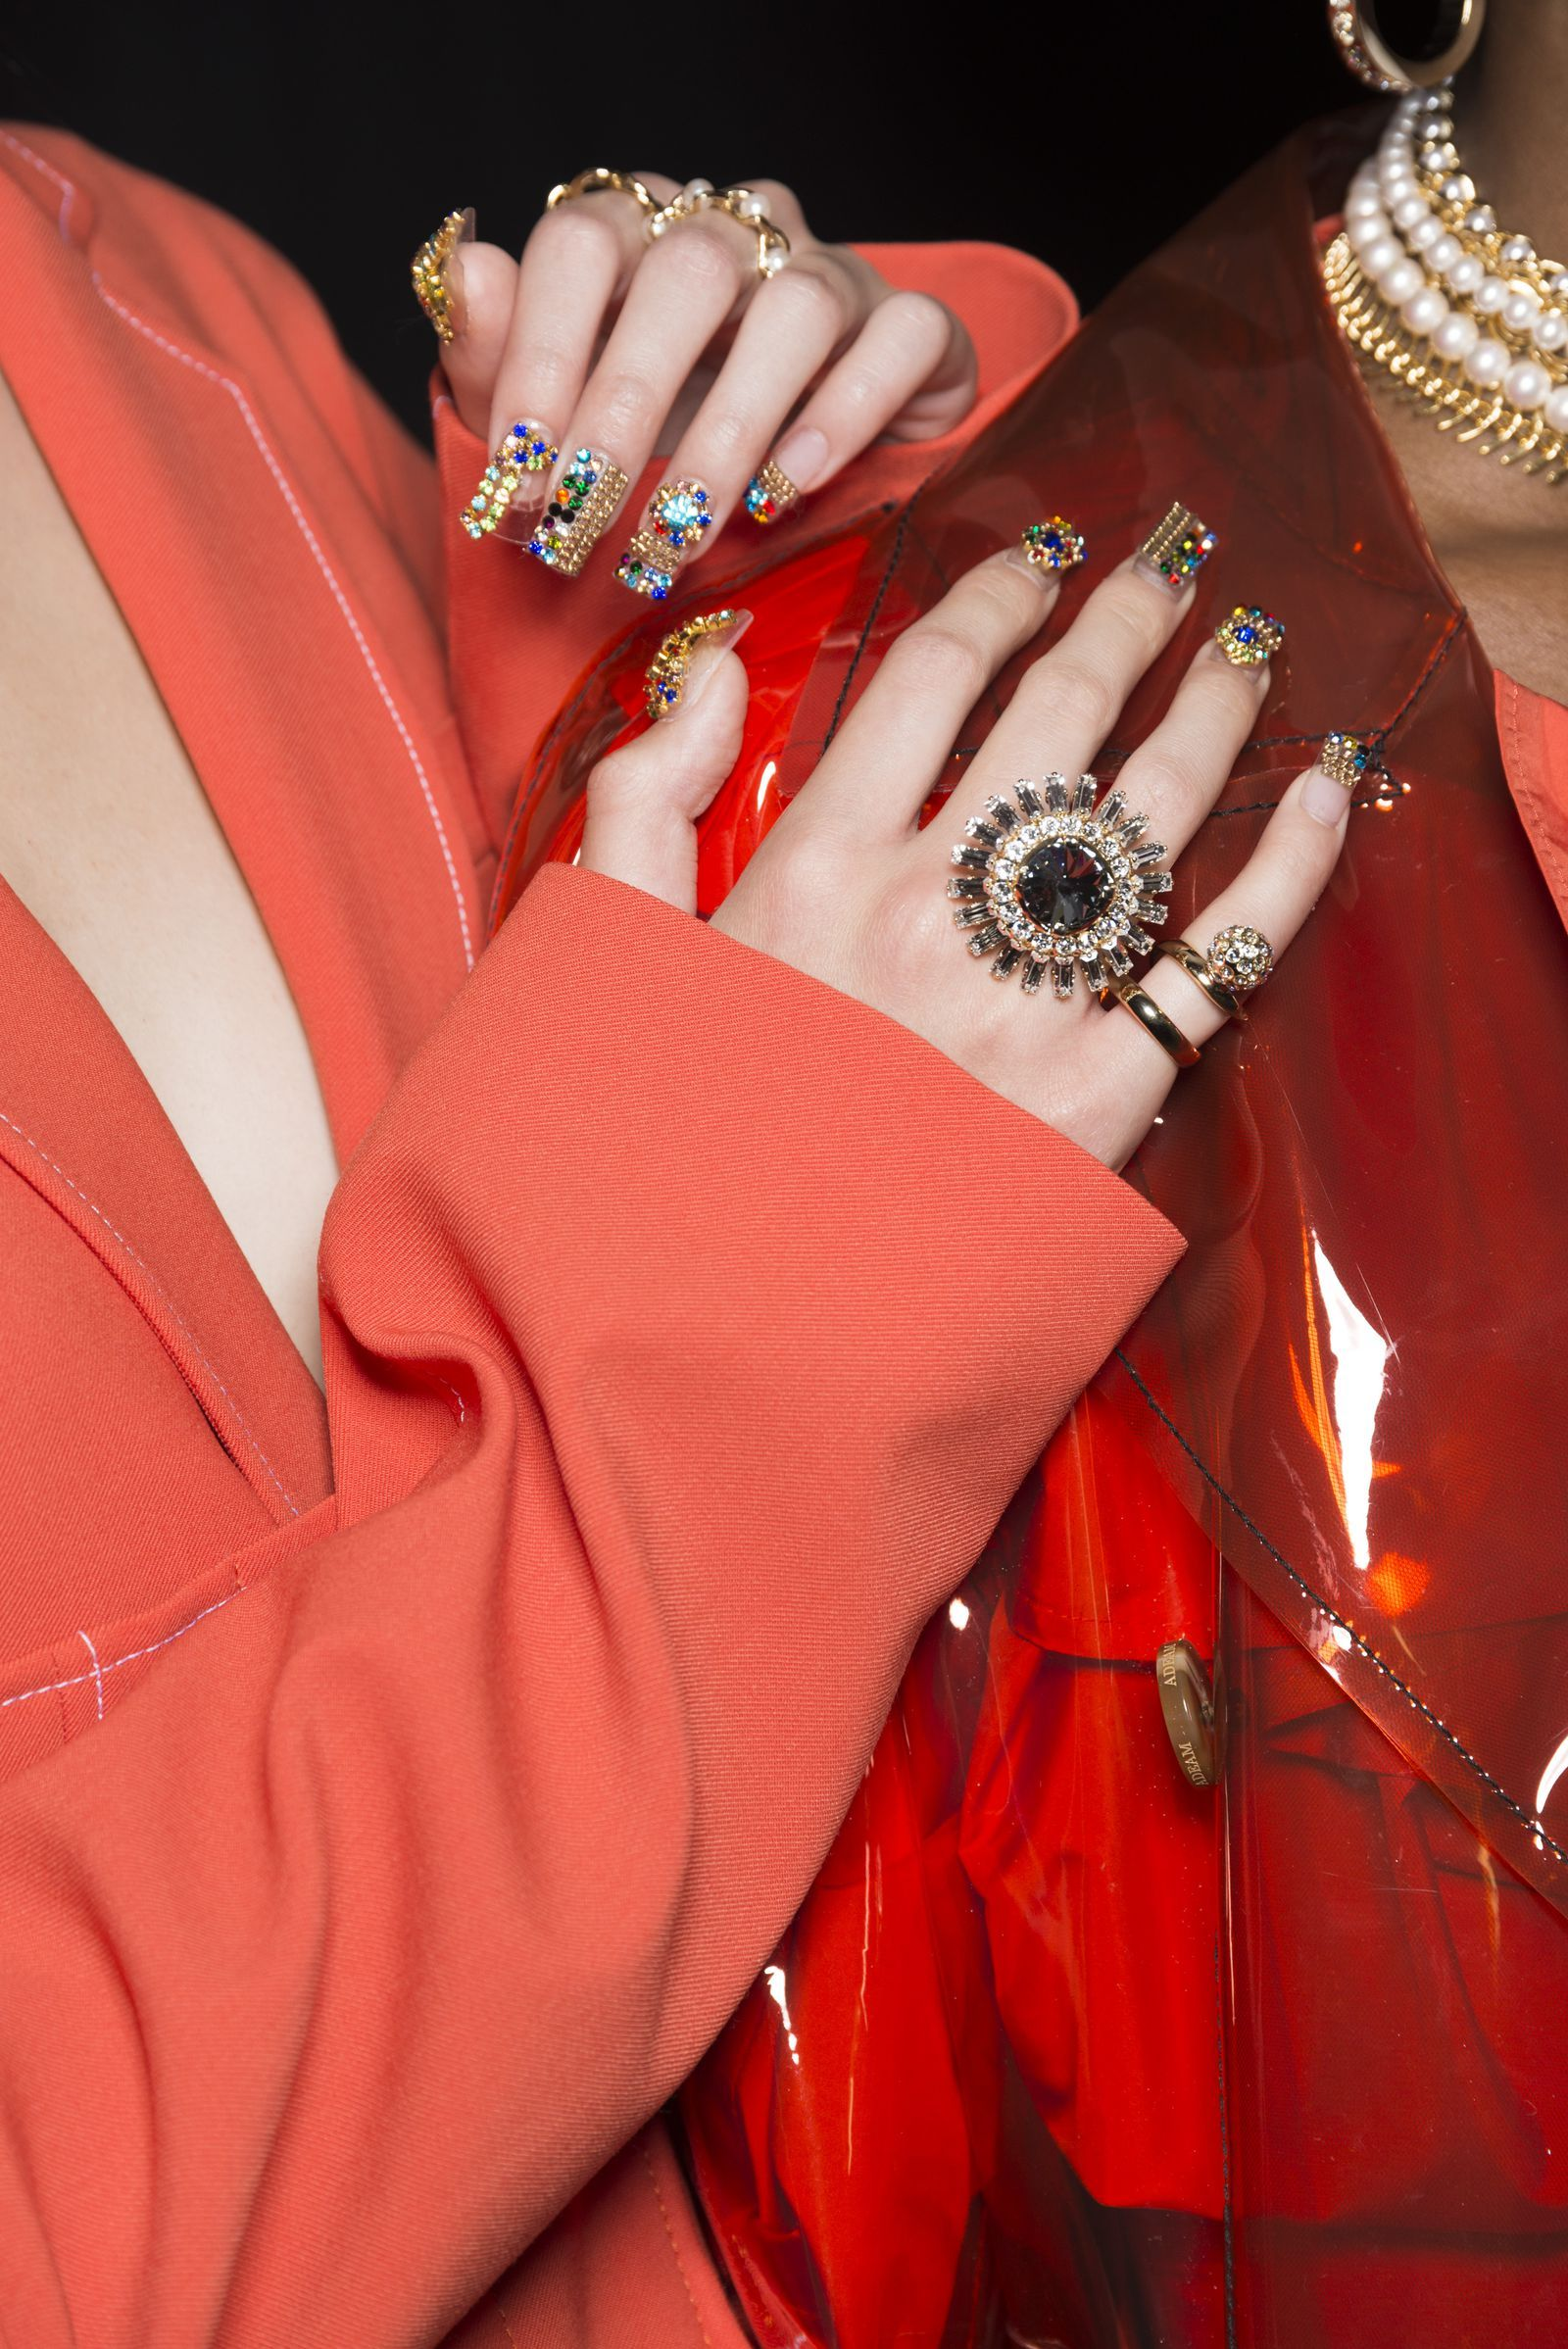 Youll Want to Wear These Spring 2019 Nail Trends Right Now